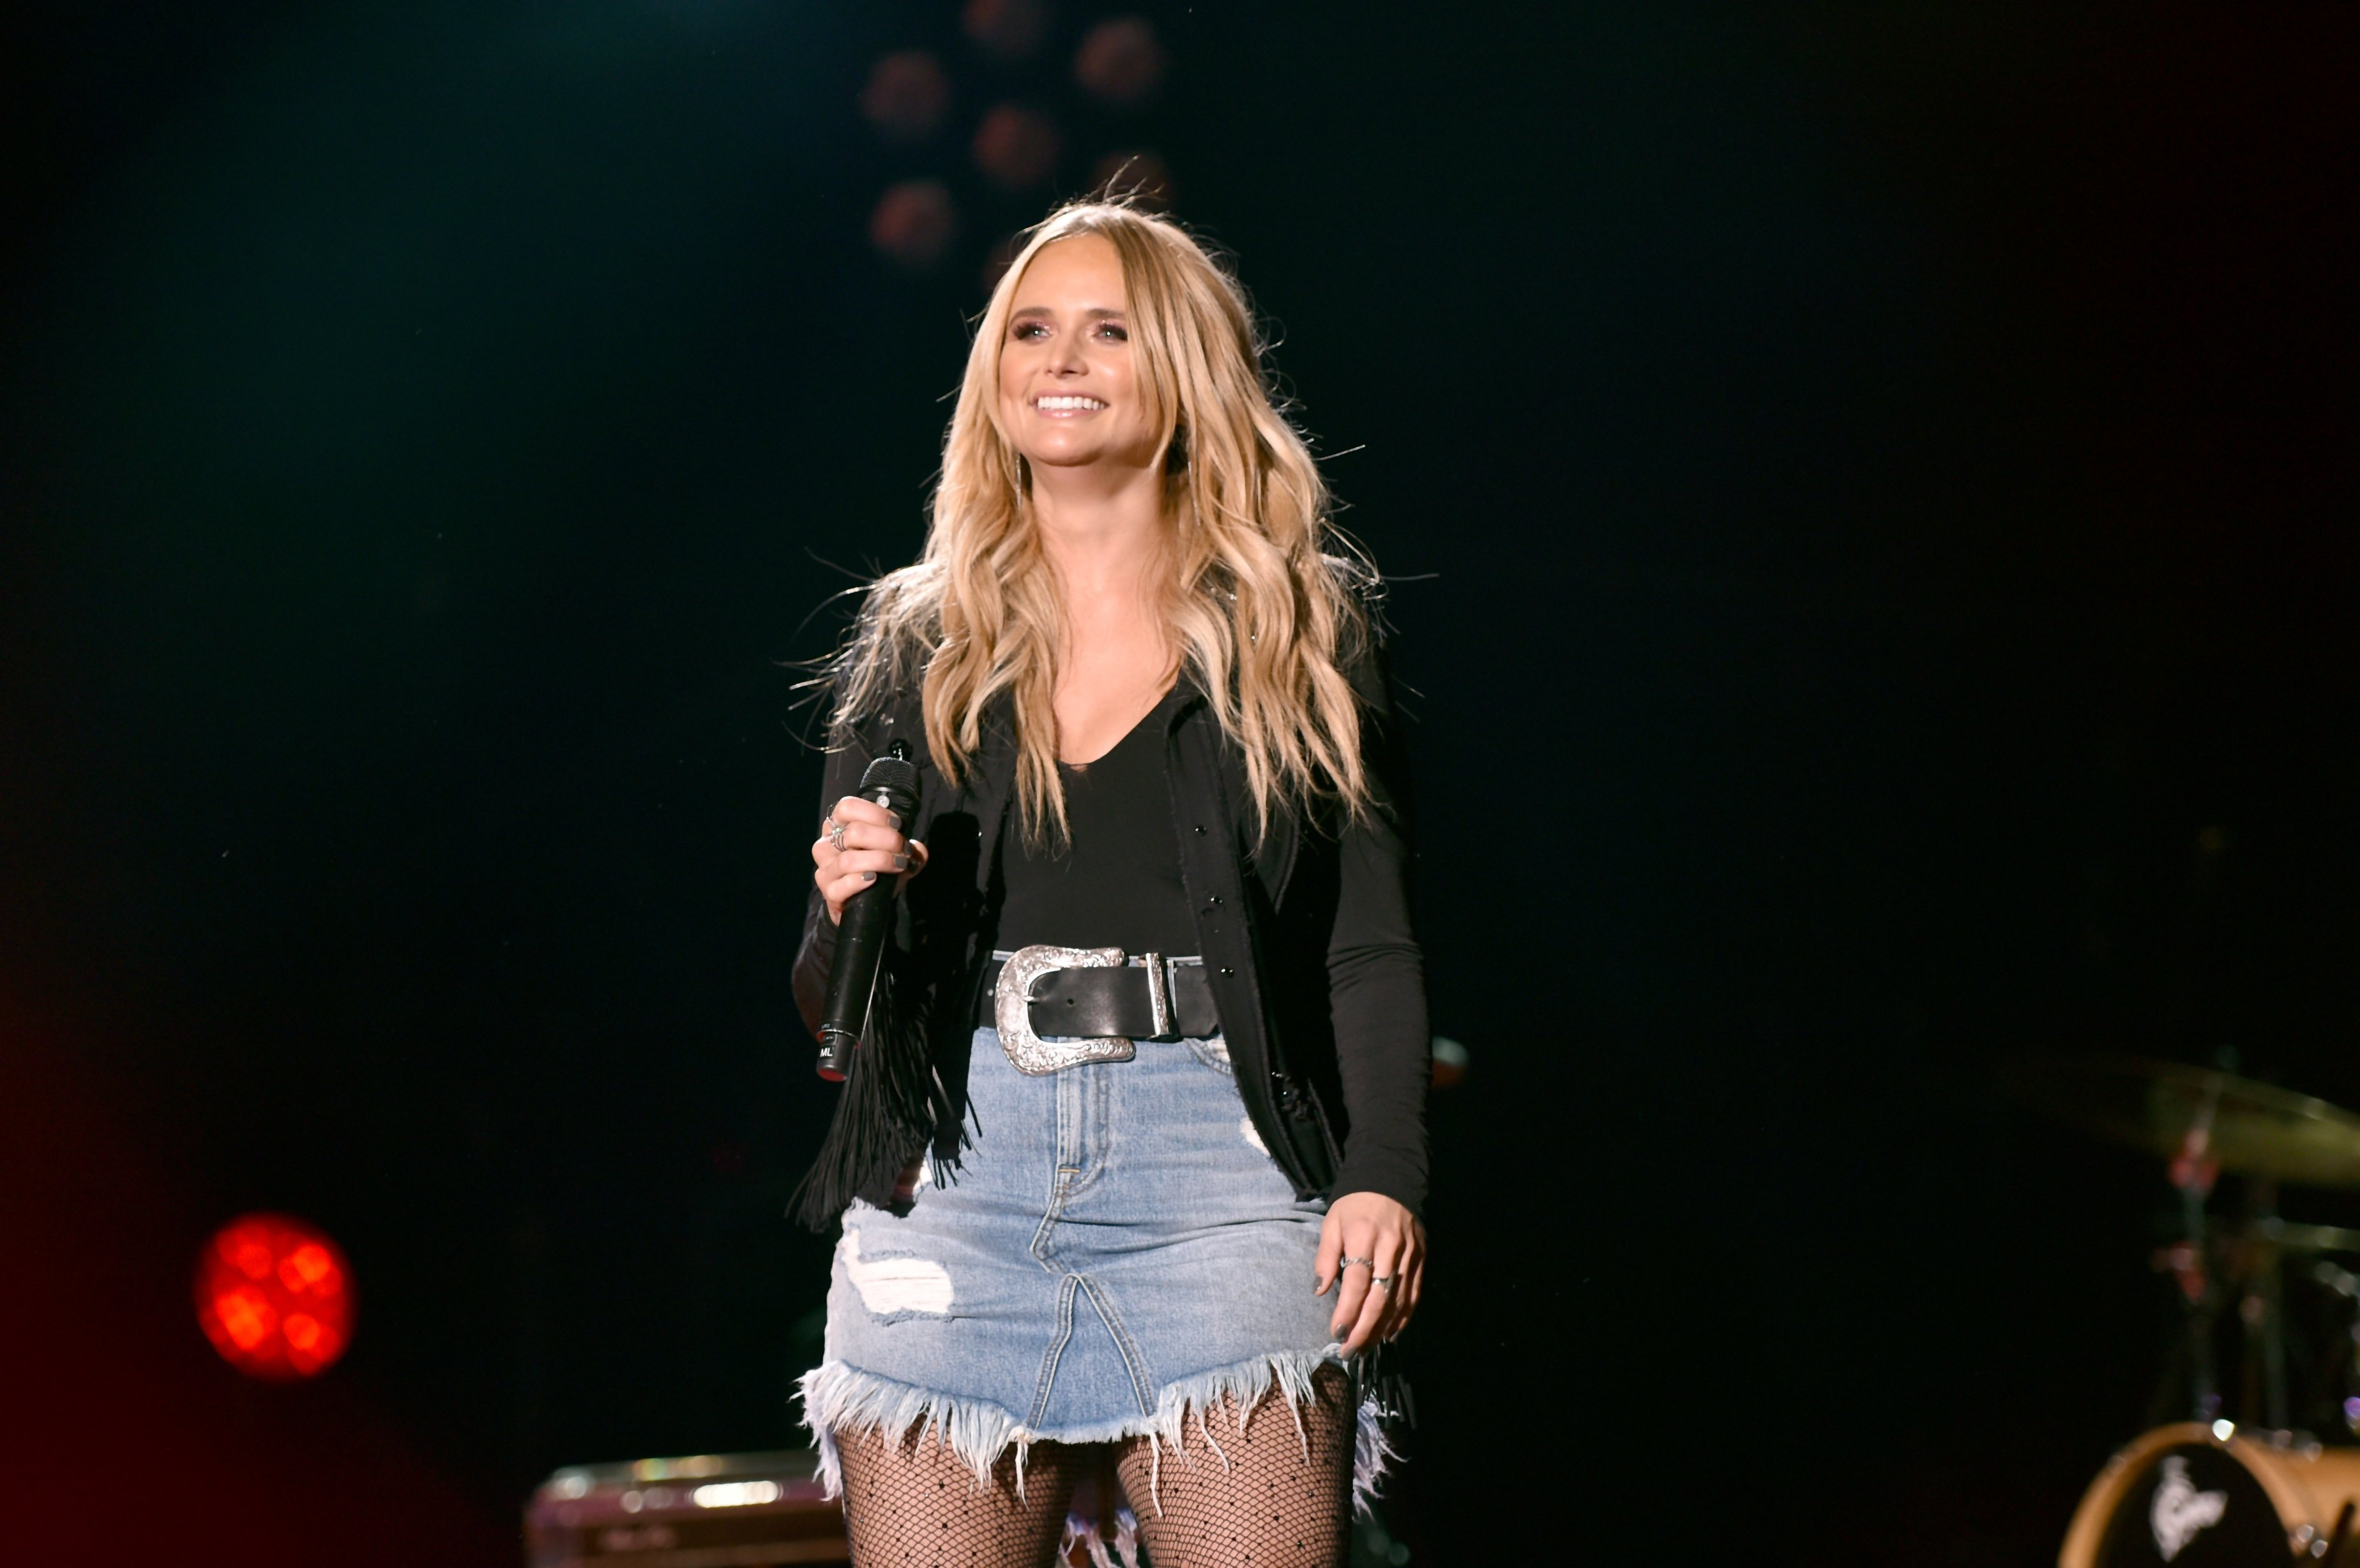 Image Credits: Getty Images | Miranda Lambert on stage